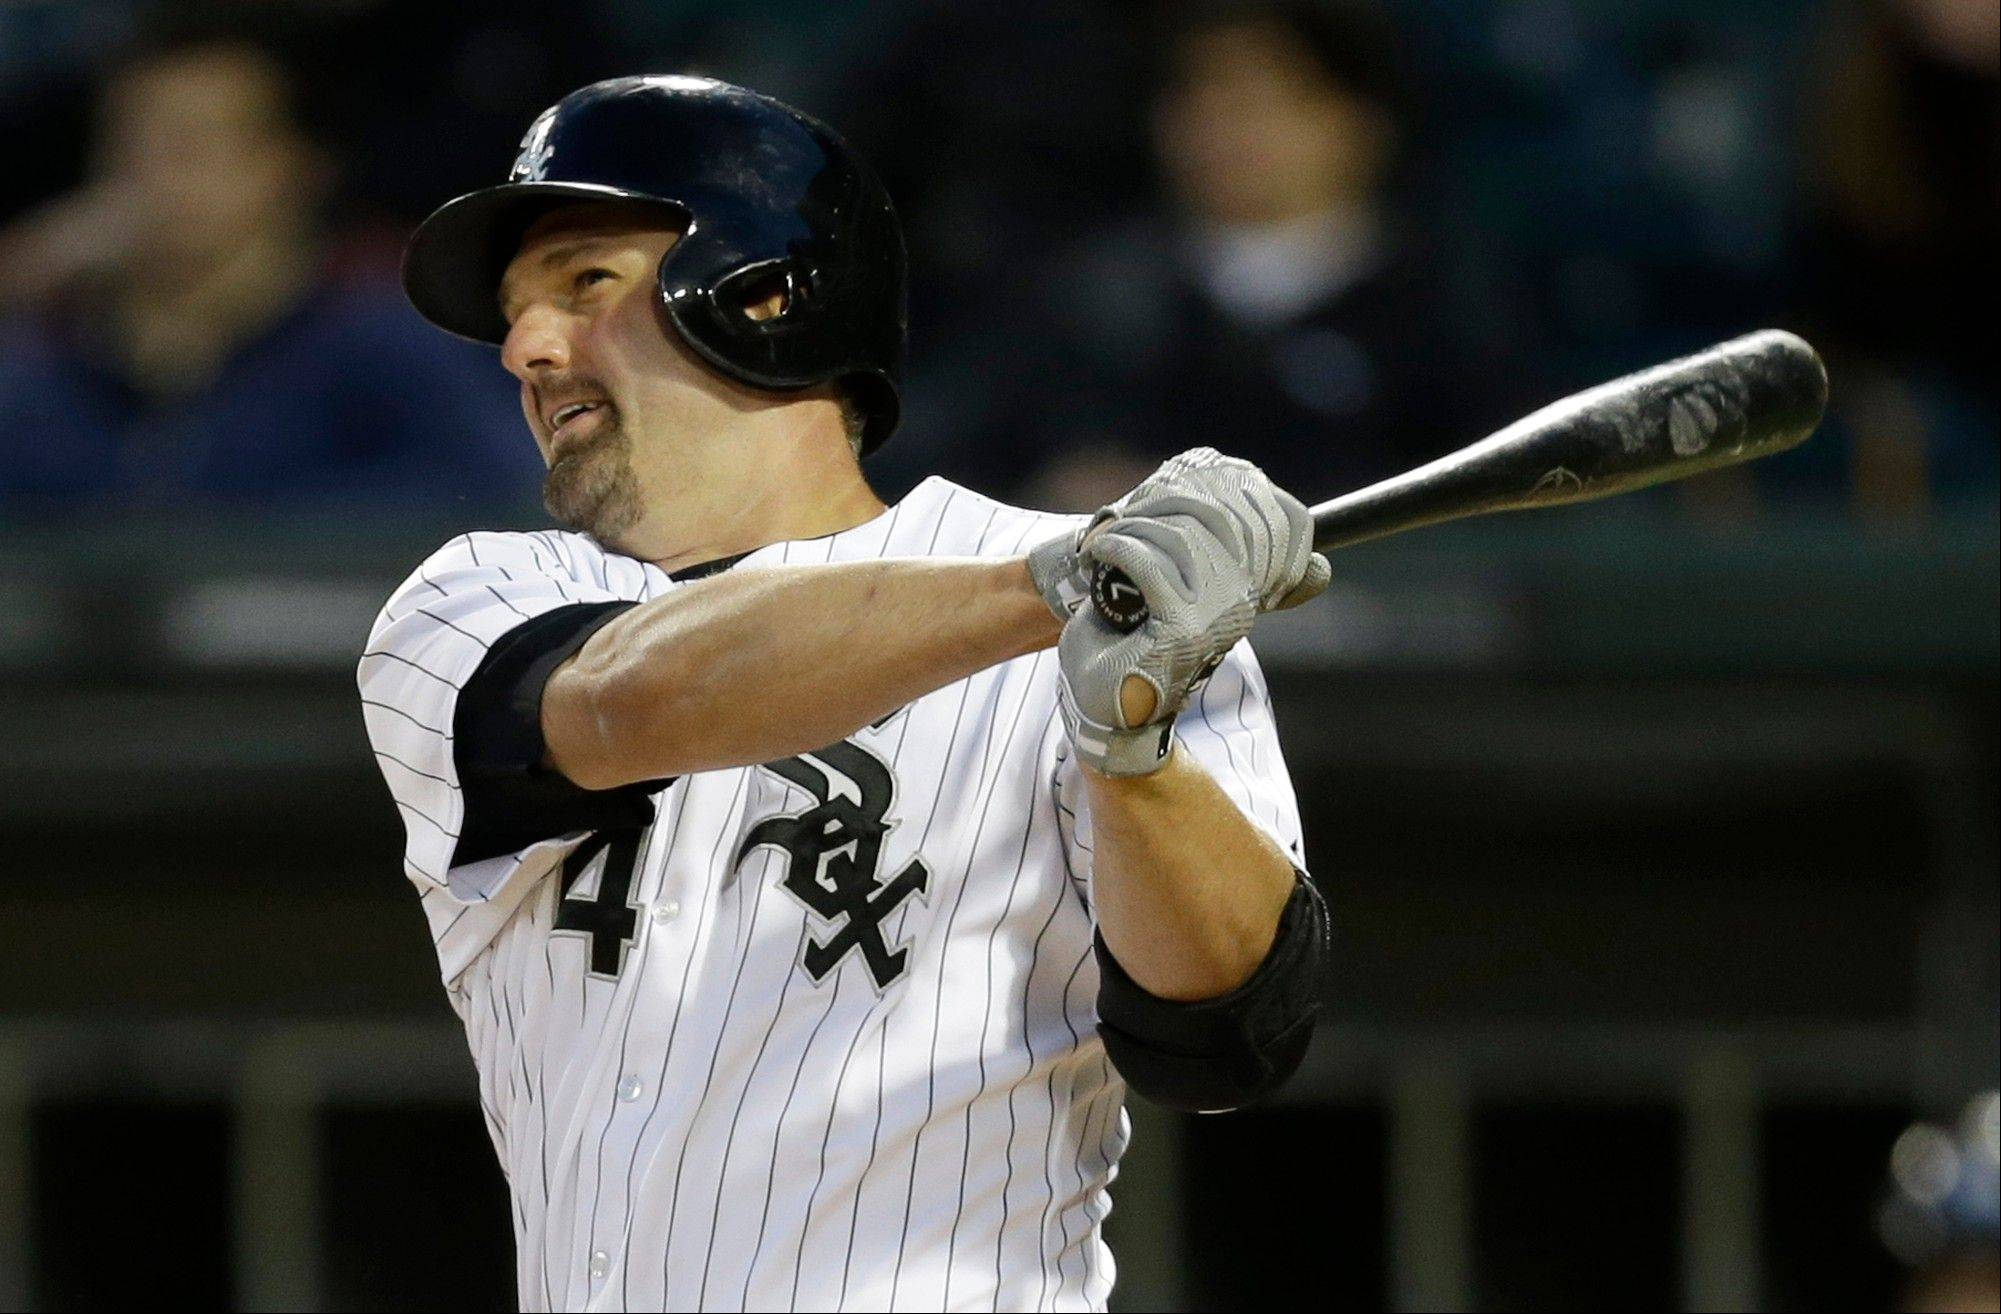 White Sox's Paul Konerko hits a single during the fifth inning of an interleague baseball game against the Miami Marlins, Friday, May 24, 2013, in Chicago.